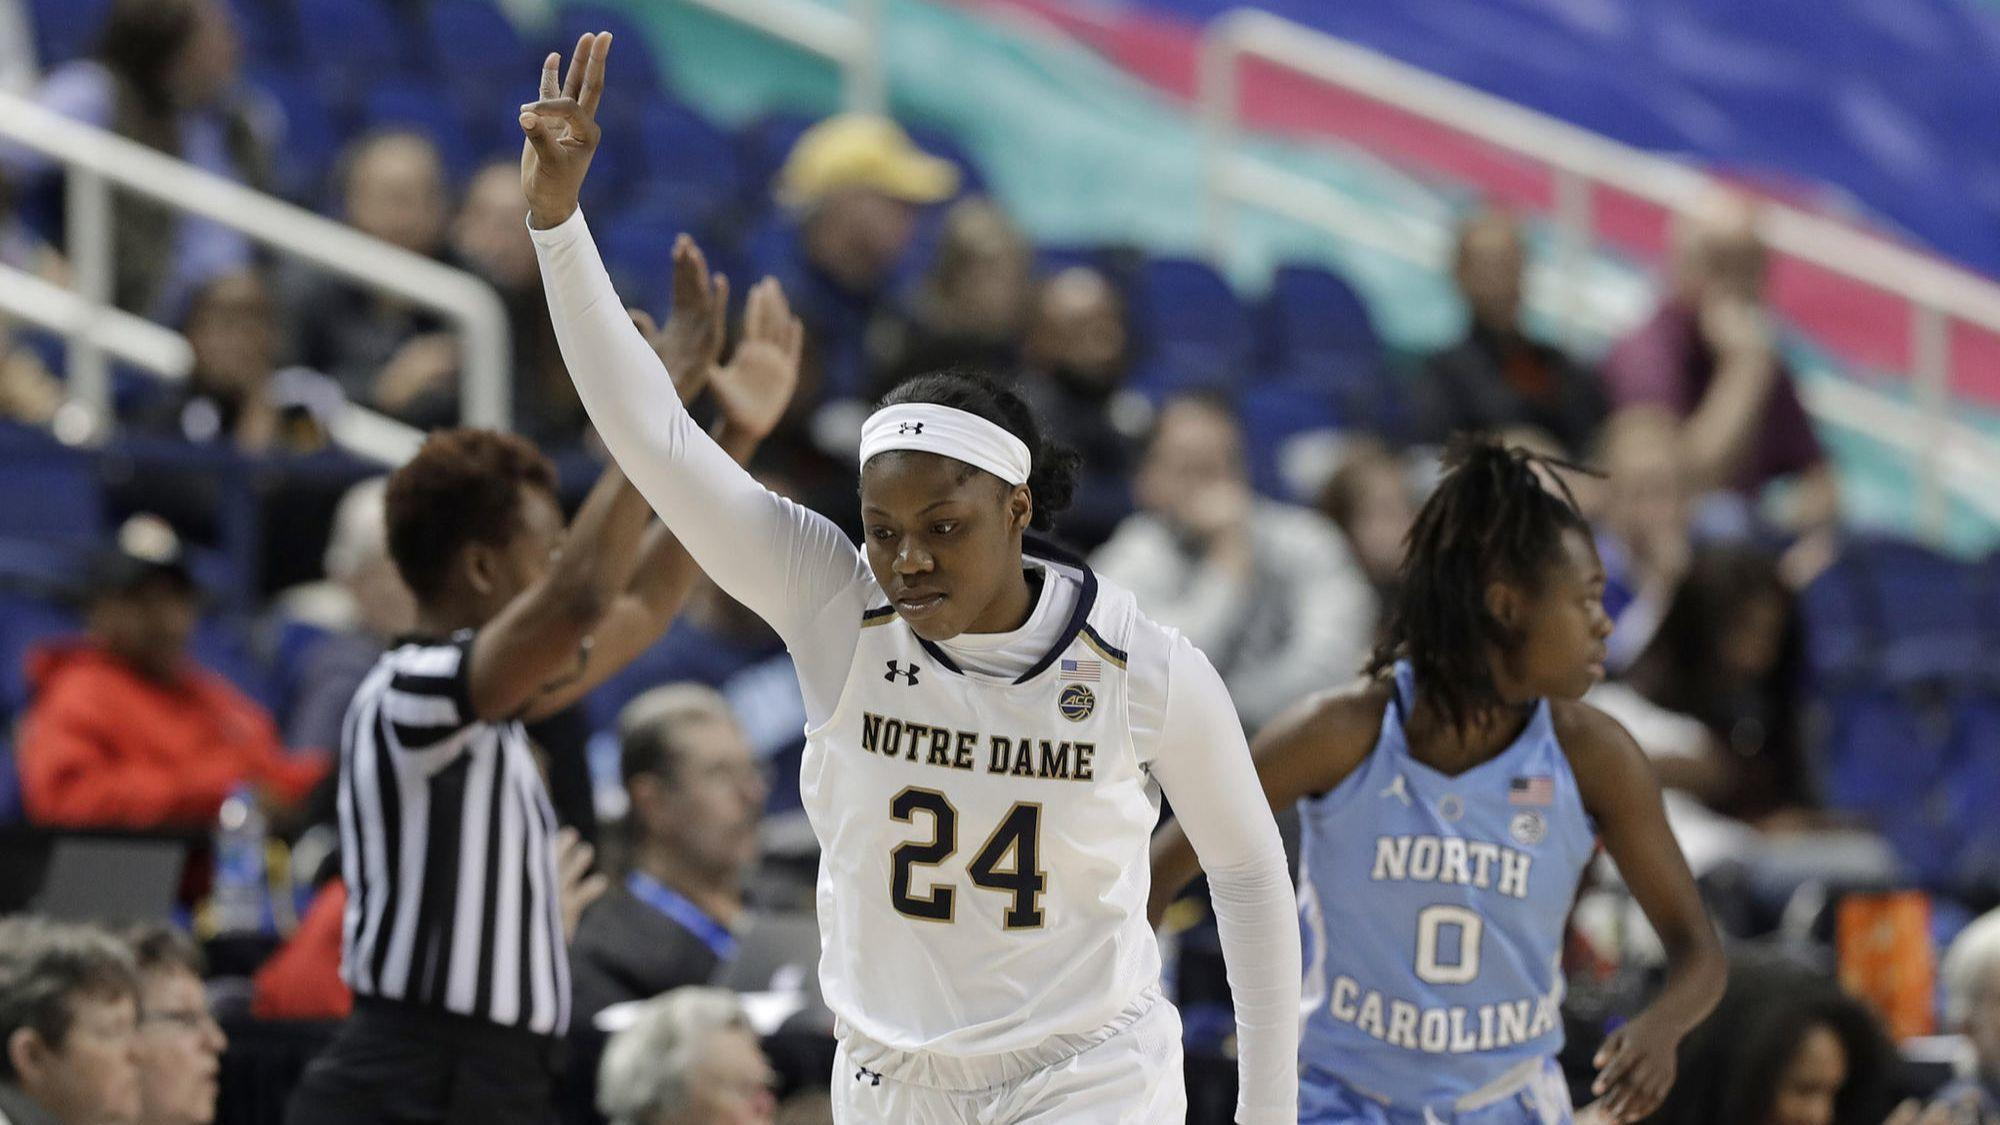 4cc6c367ffe4 The highlight of Arike Ogunbowale s year in the national limelight    Winning a national championship.  And now she s out to do it again for Notre  Dame.